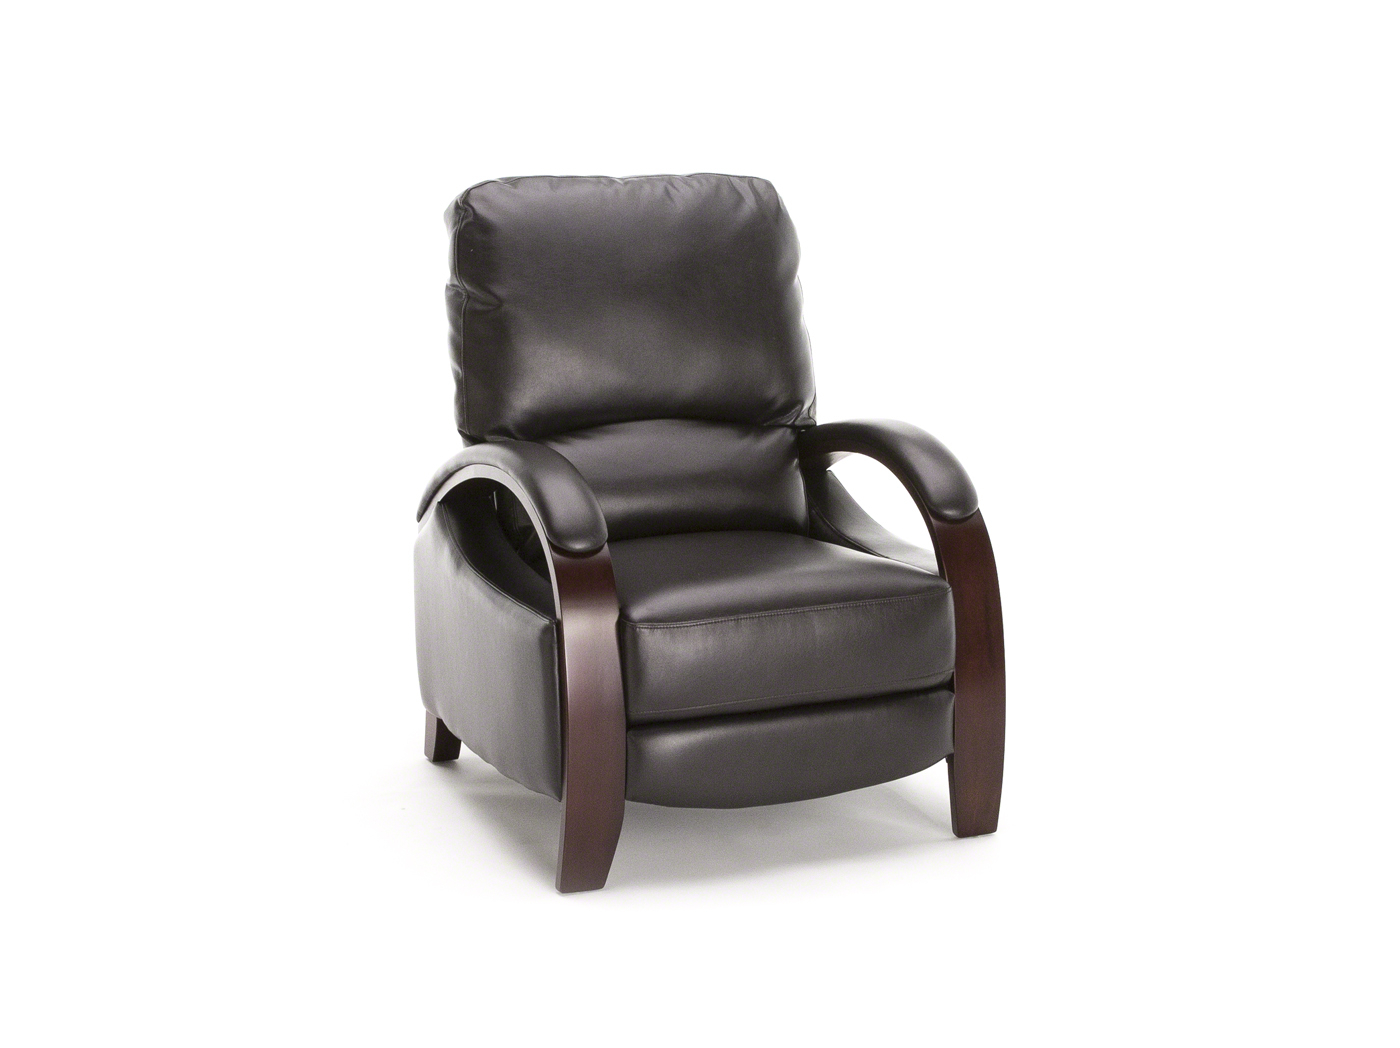 Living Room – Recliners | Steinhafels Pertaining To Mari Swivel Glider Recliners (Photo 7 of 20)